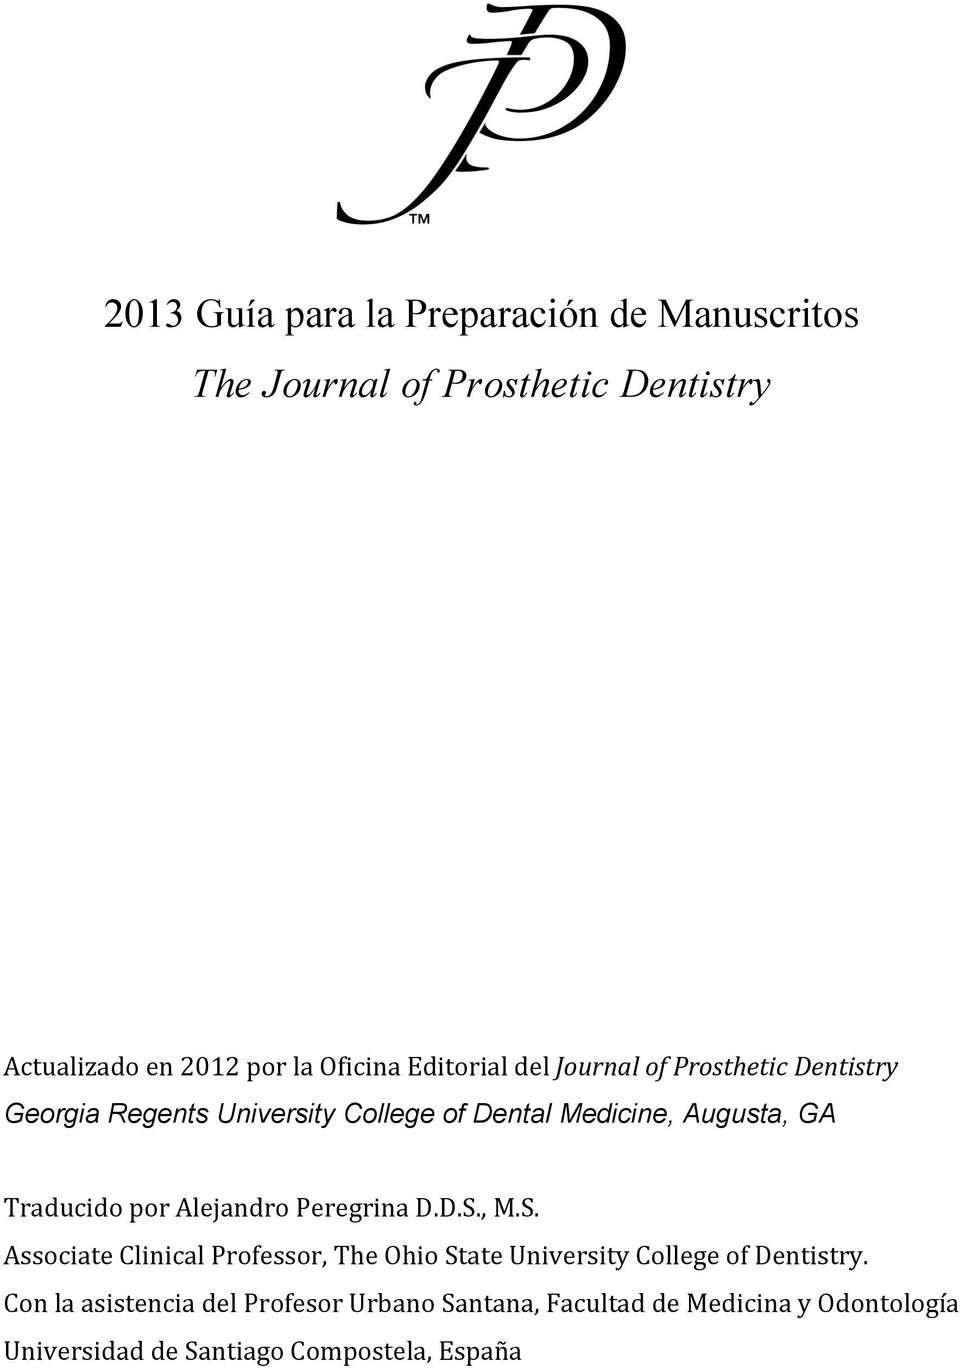 Traducido por Alejandro Peregrina D.D.S., M.S. Associate Clinical Professor, The Ohio State University College of Dentistry.